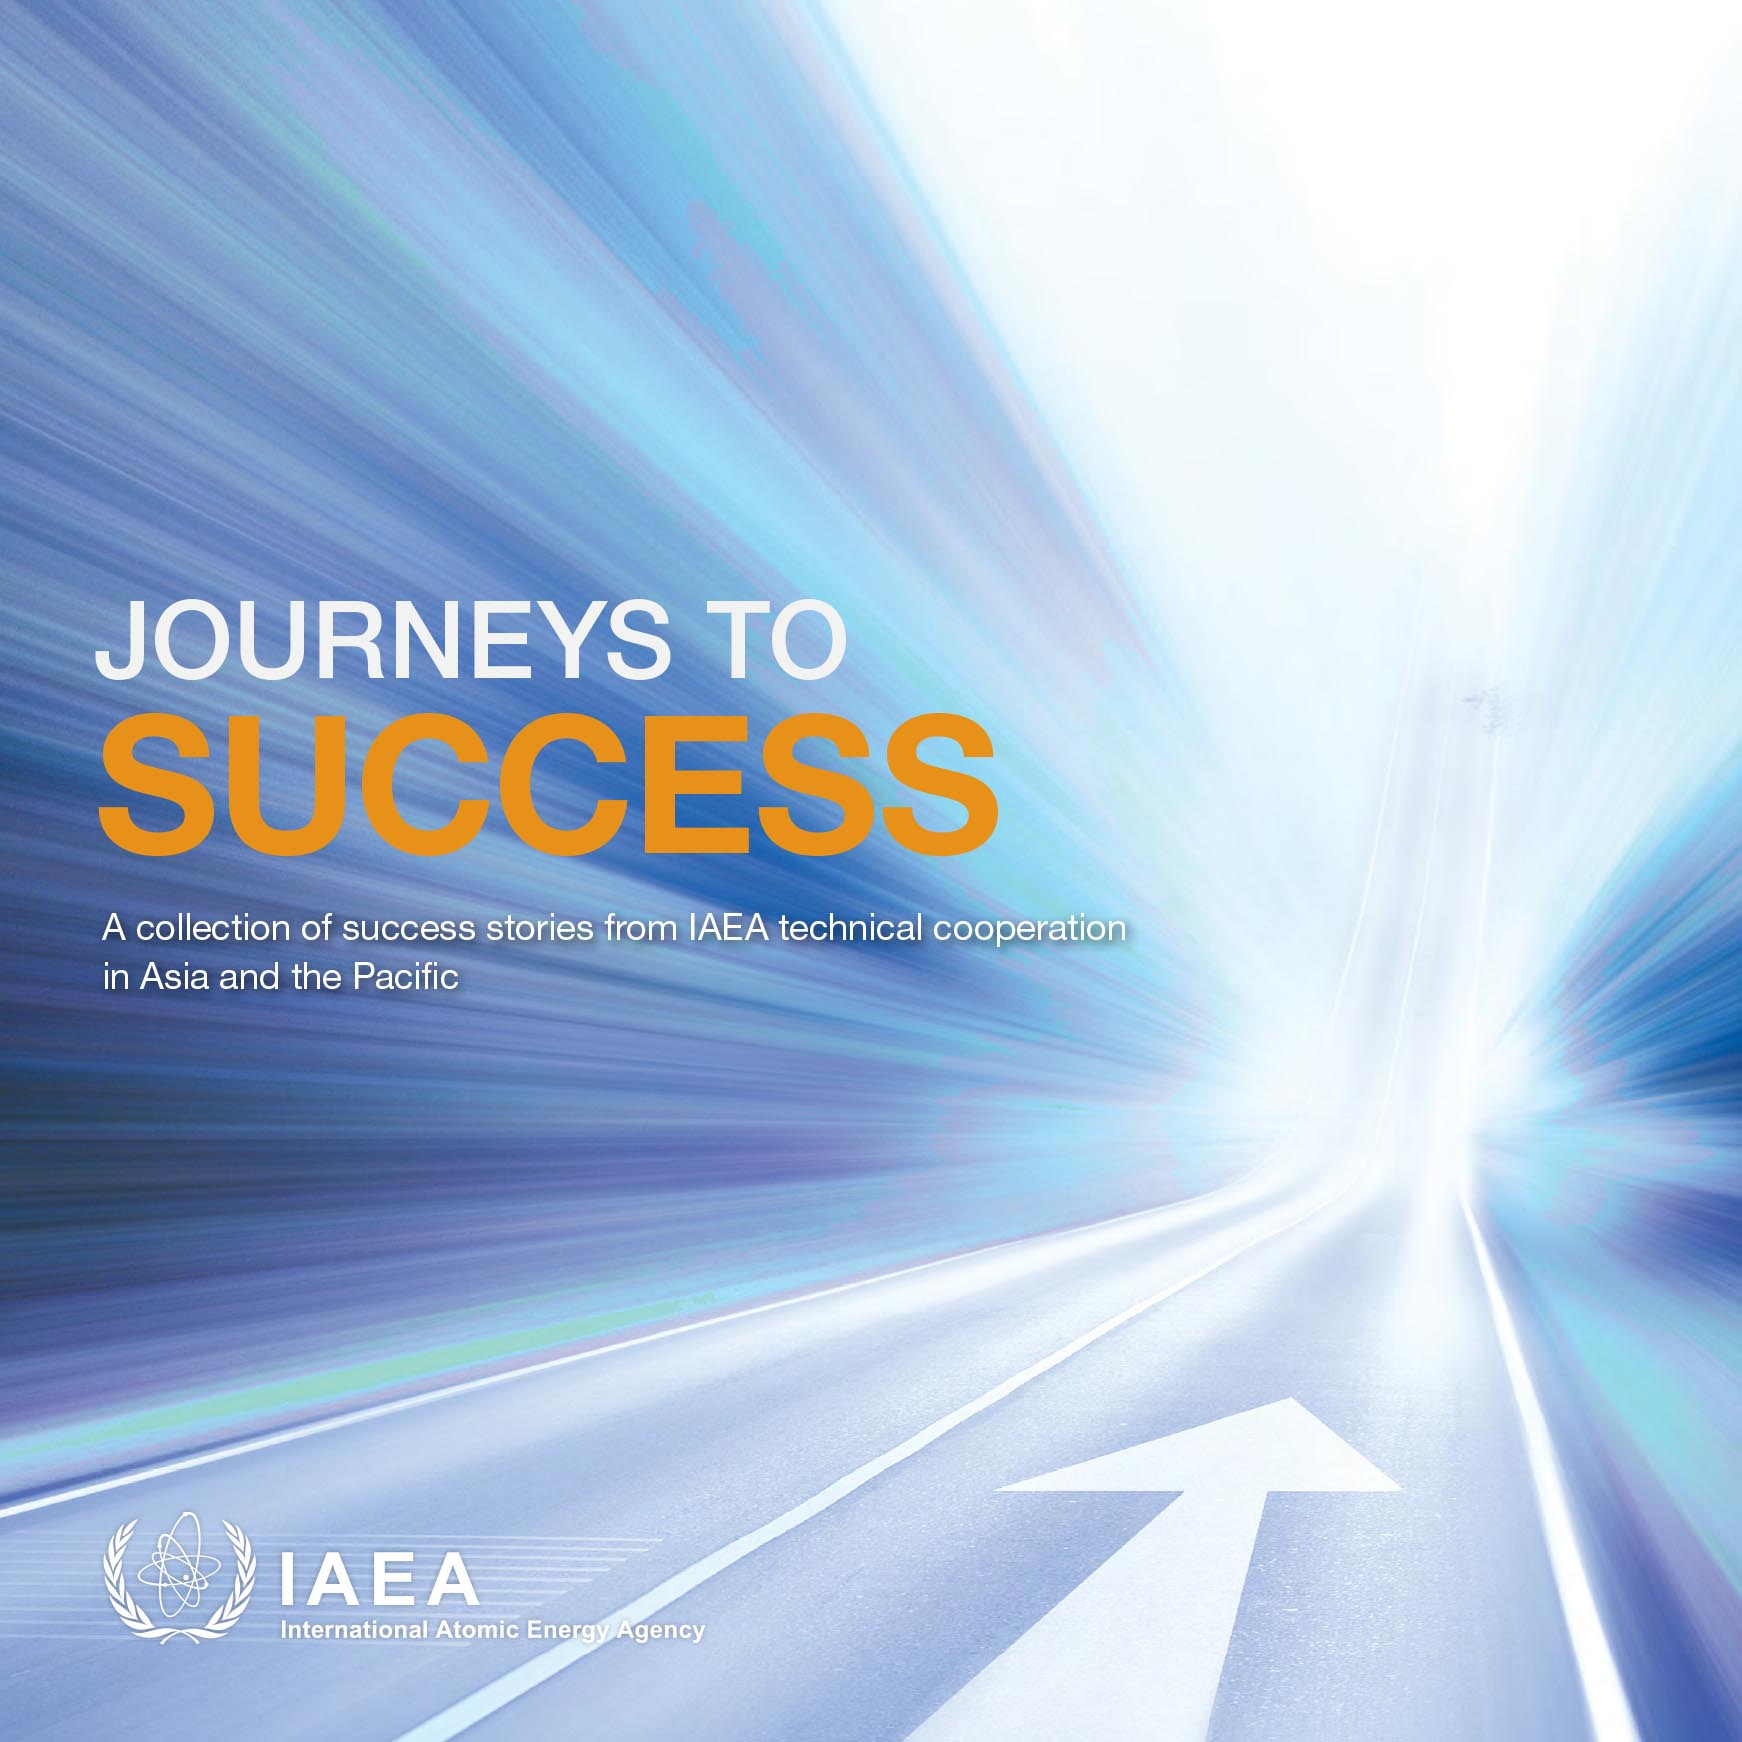 © IAEA 2020: Journey to Success cover image.